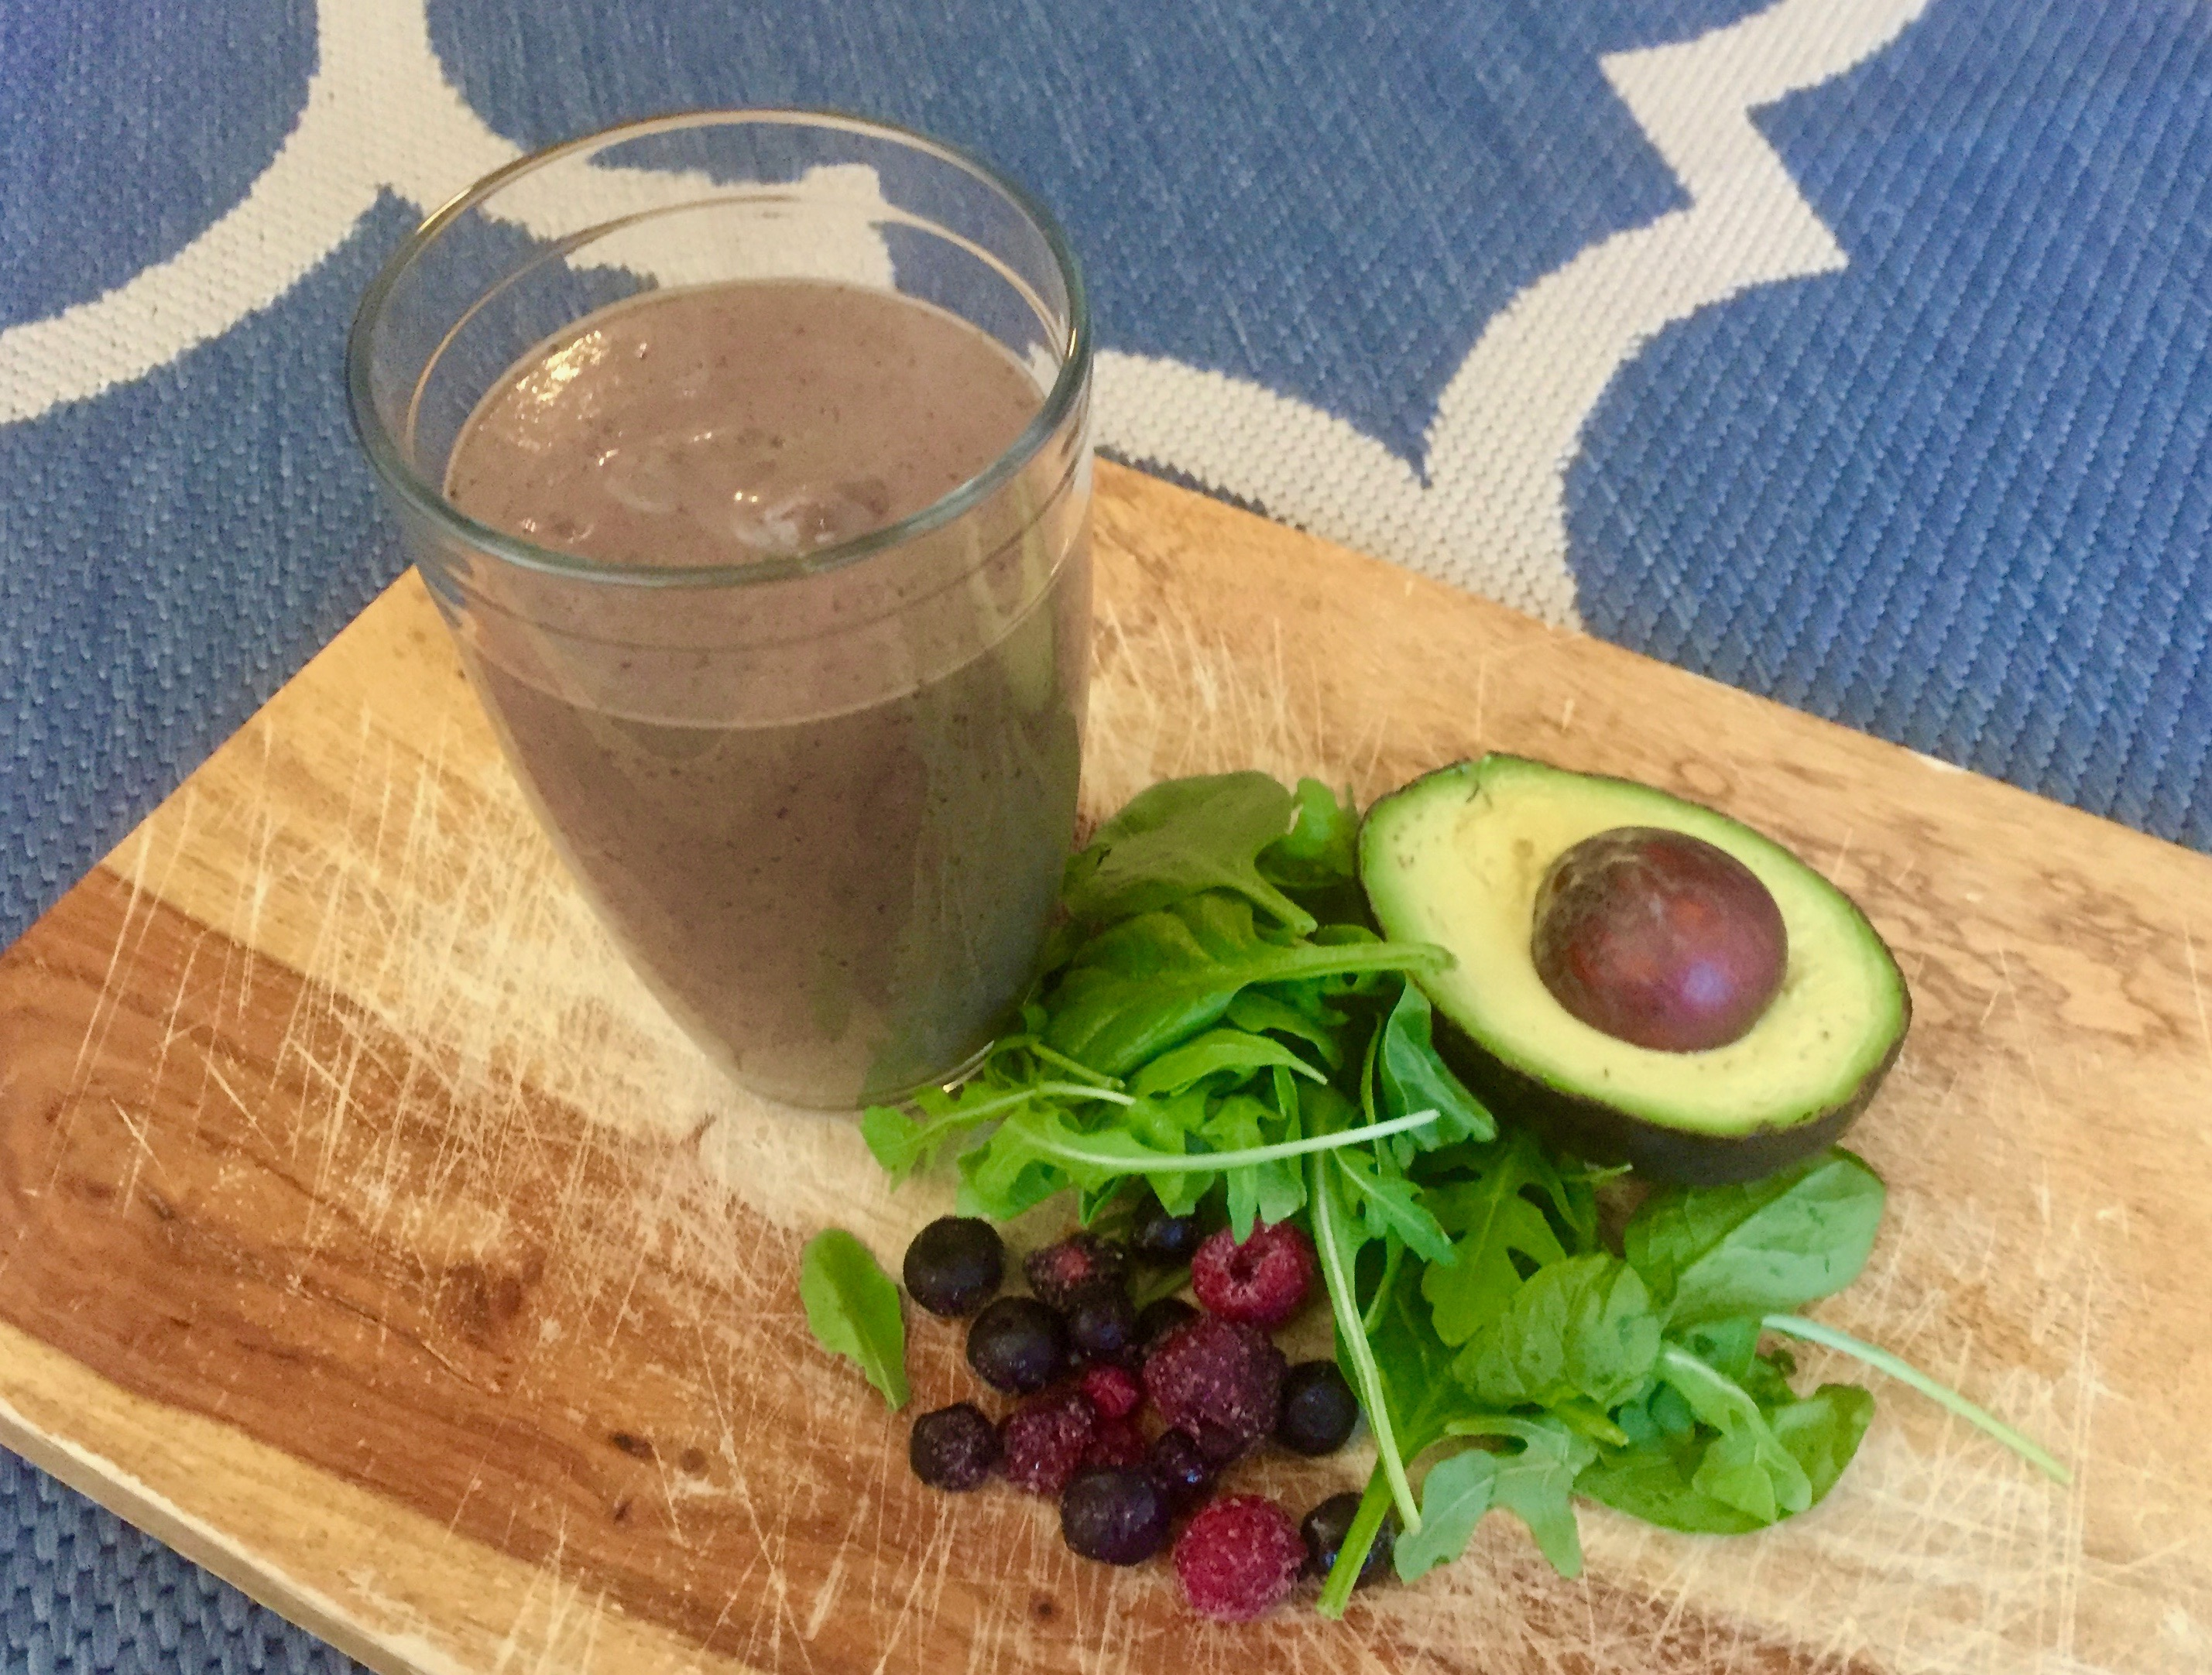 The Complete Meal Smoothie